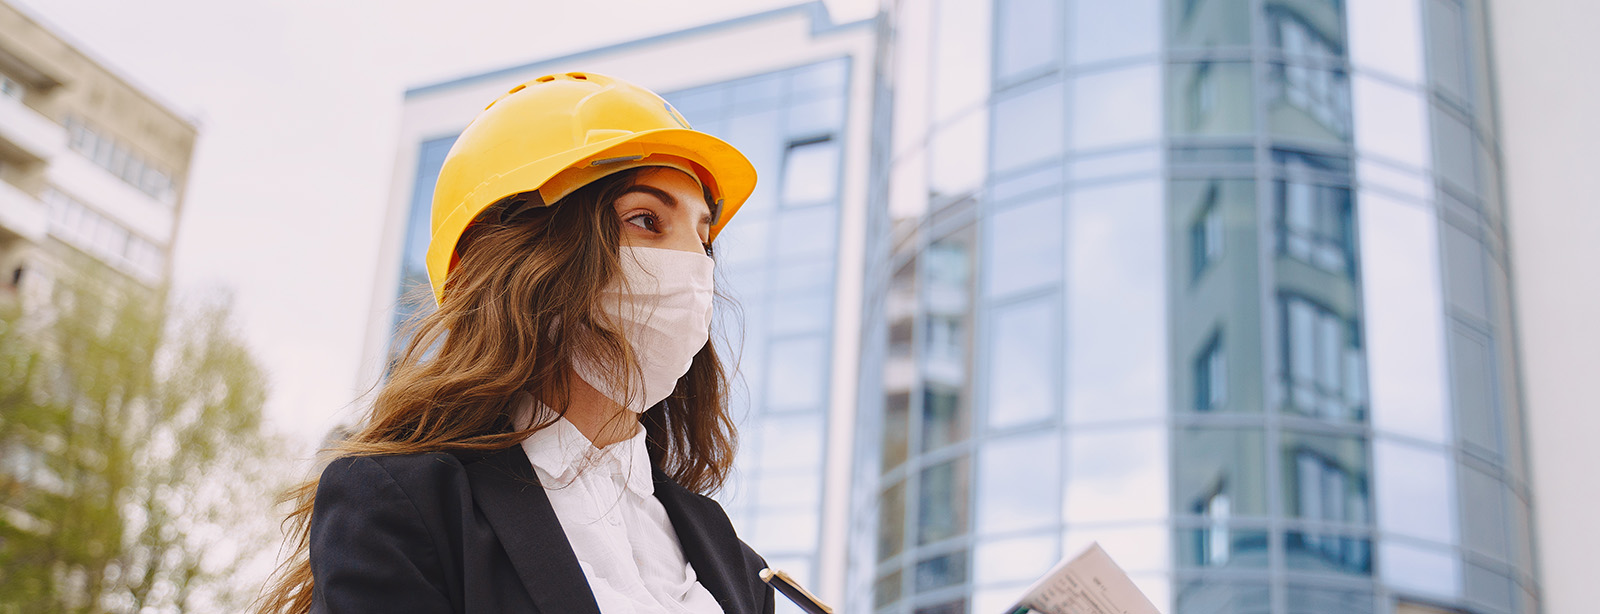 Female architect with construction site on the background